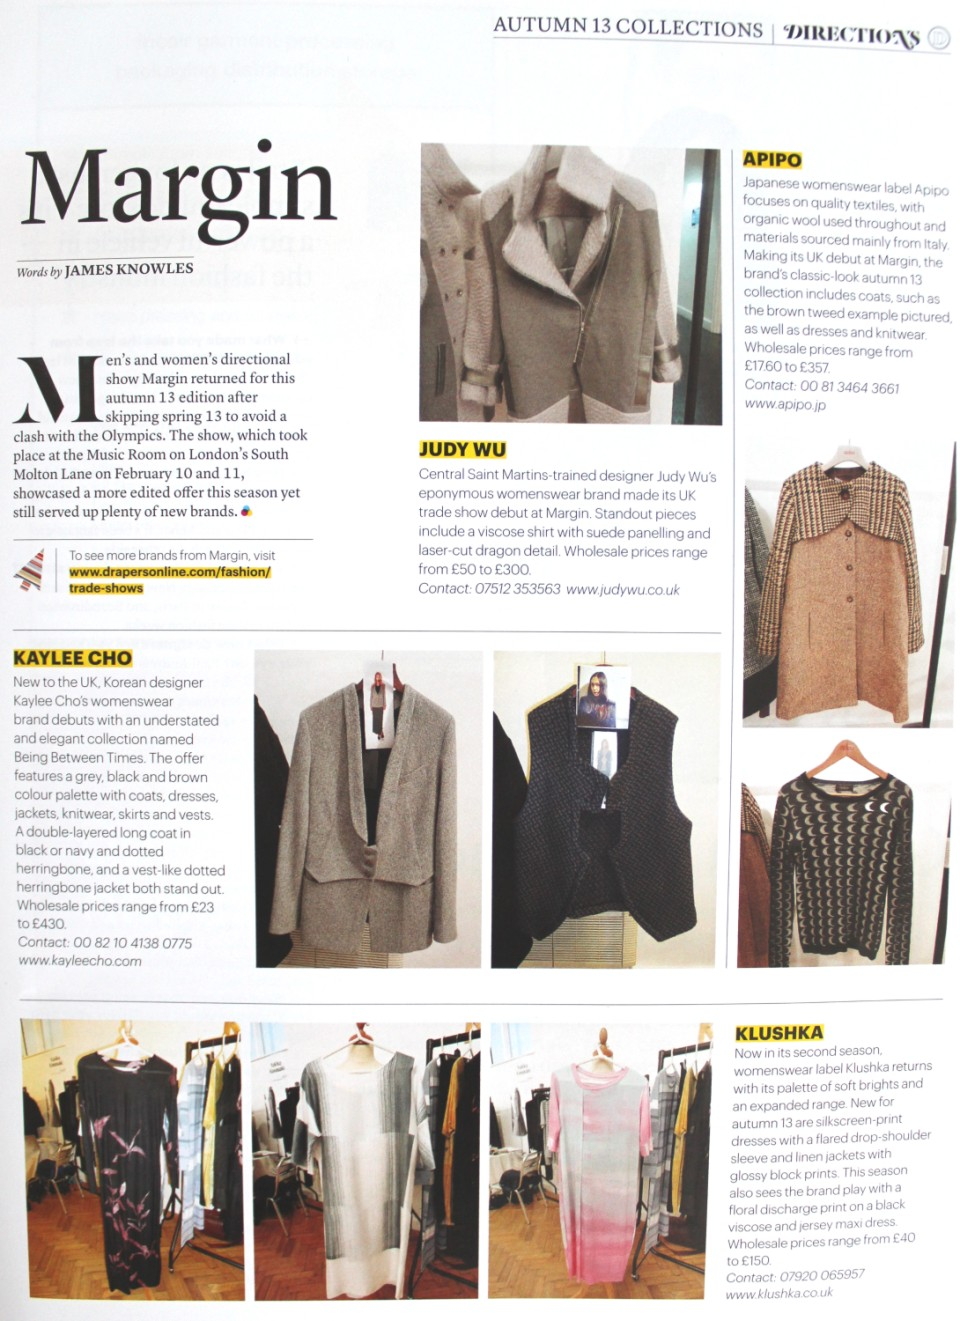 Drapers + Margin Feb 2013 Show Report + Men's and women's directional show Margin returned for this autumn 13 edition after skipping spring 13 to avoid a clash with the Olympics. The show, which took place at the Music Room on London's South Molton Lane on February 10 and 11, showcased a more edited offer this season yet still served up plenty of new brands.